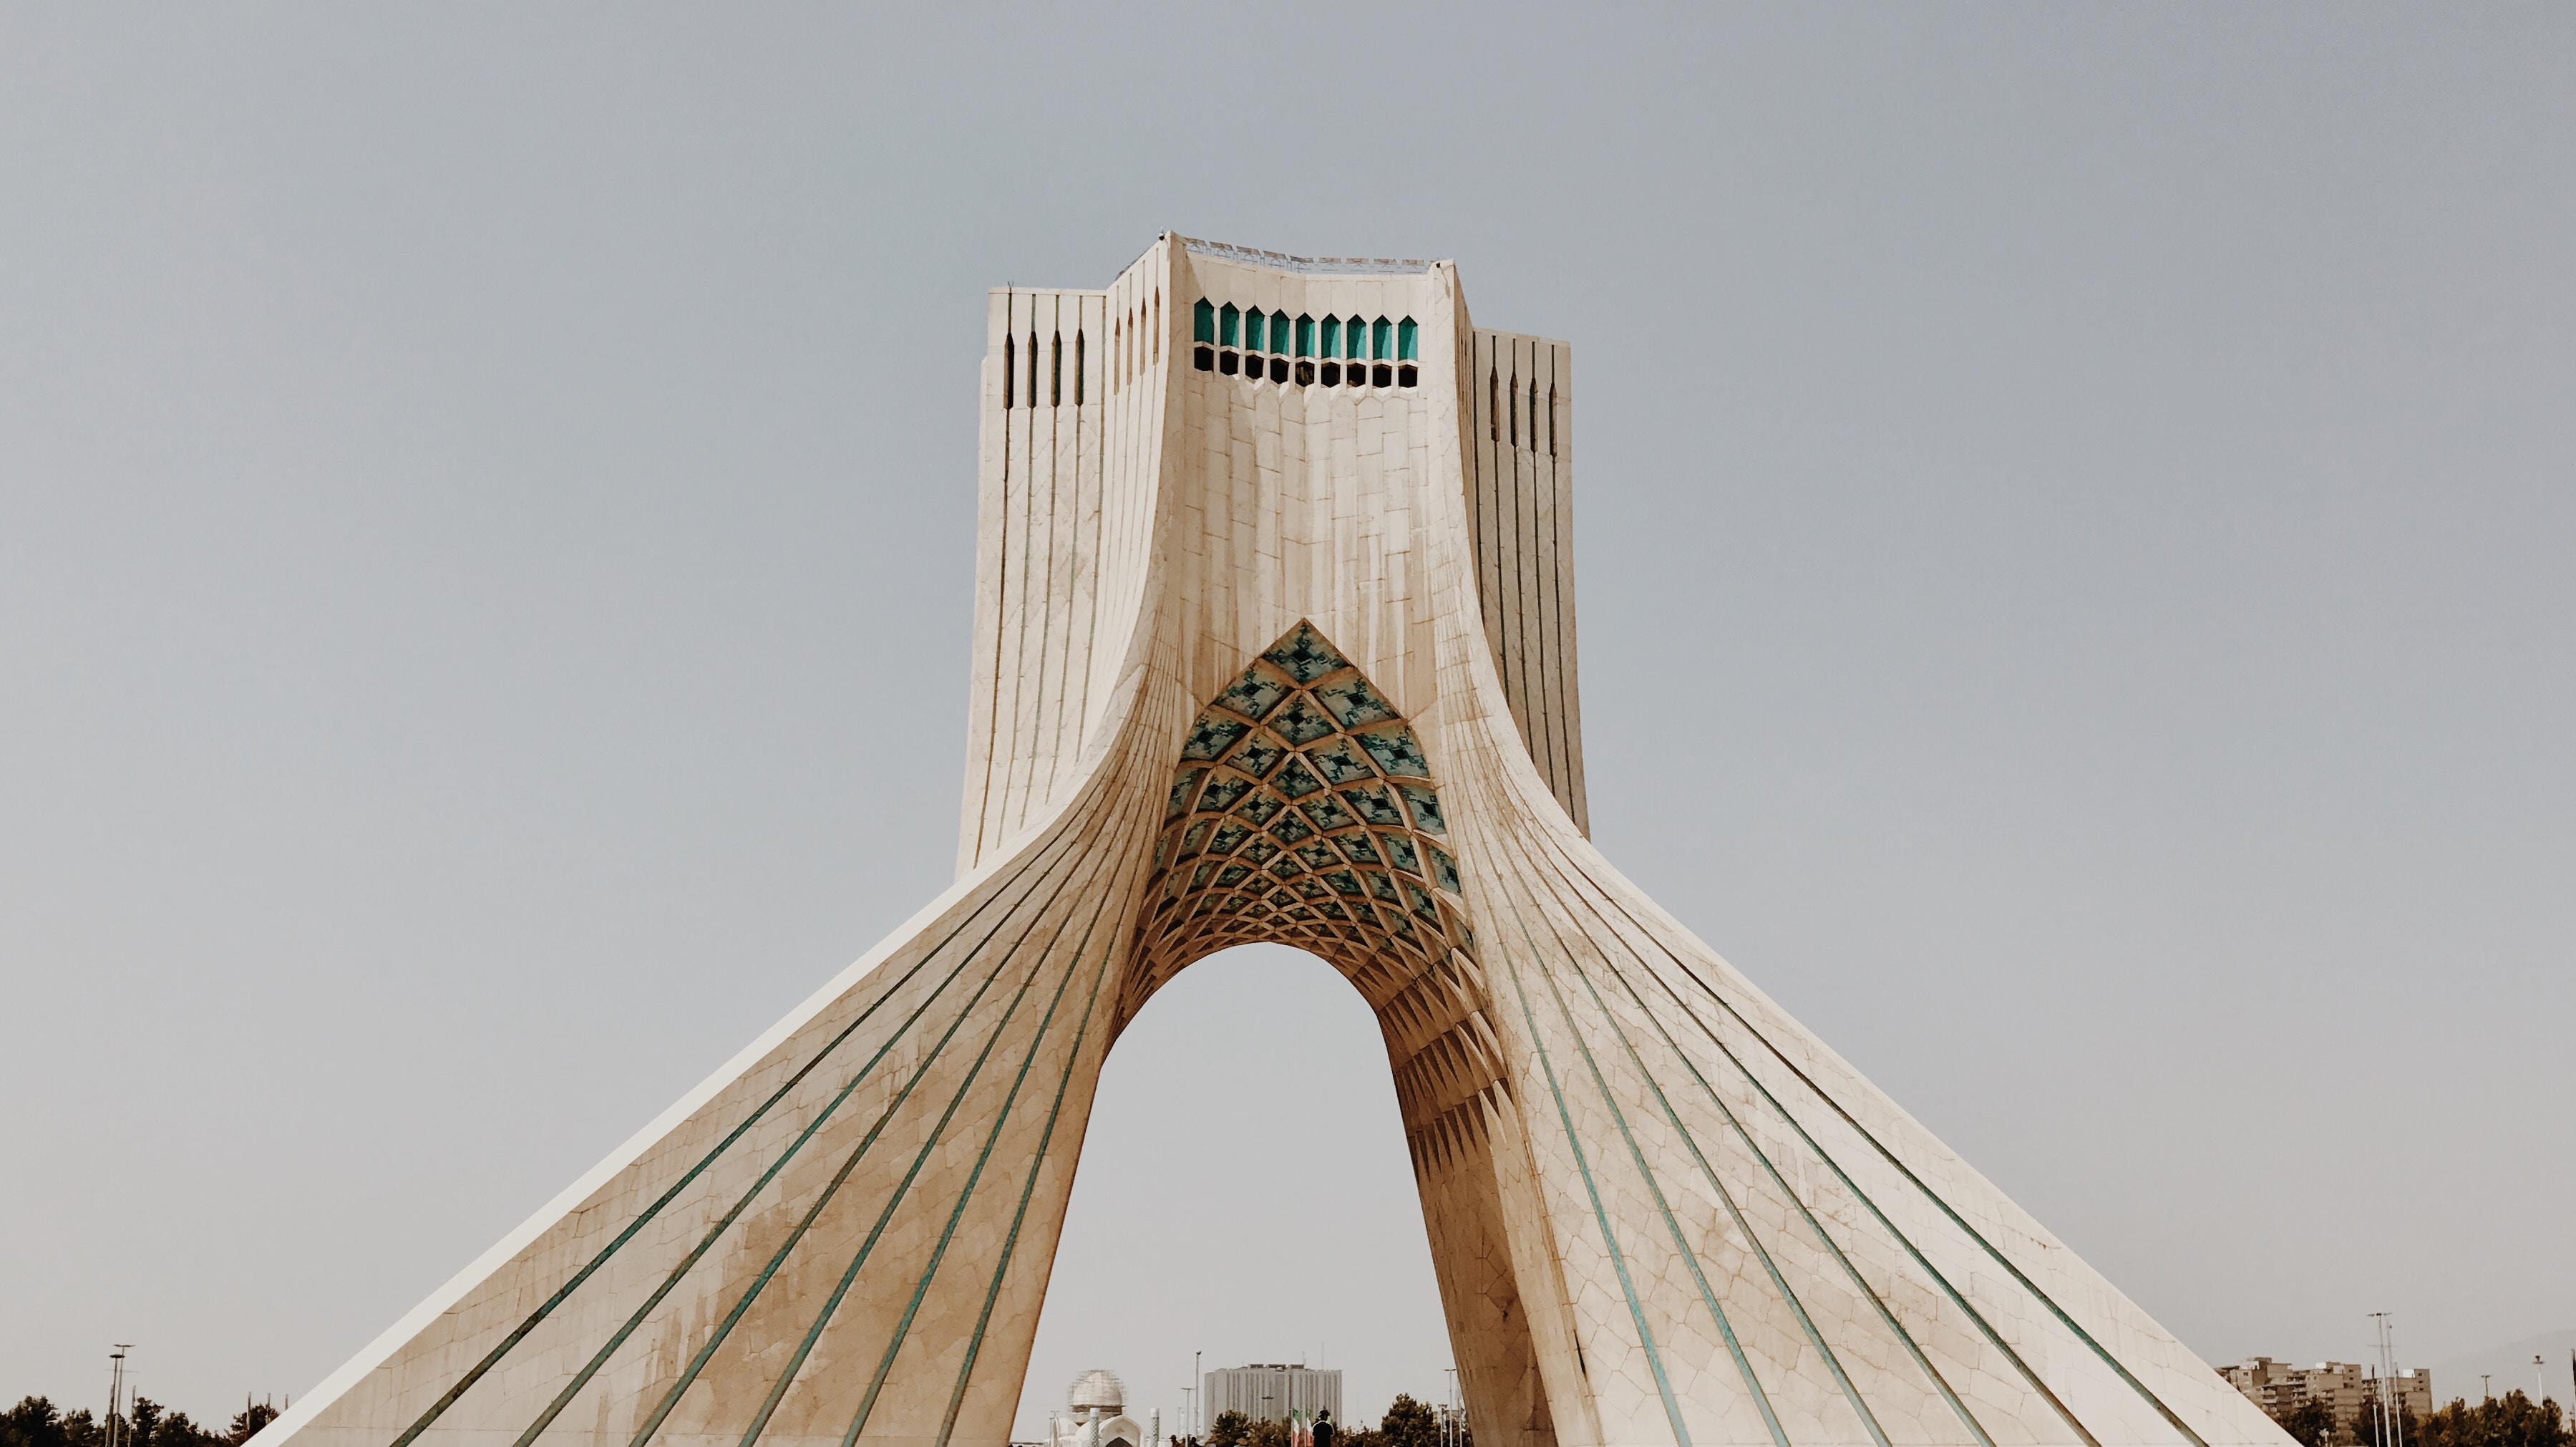 Commentary 571: Iran through the eyes of an outsider